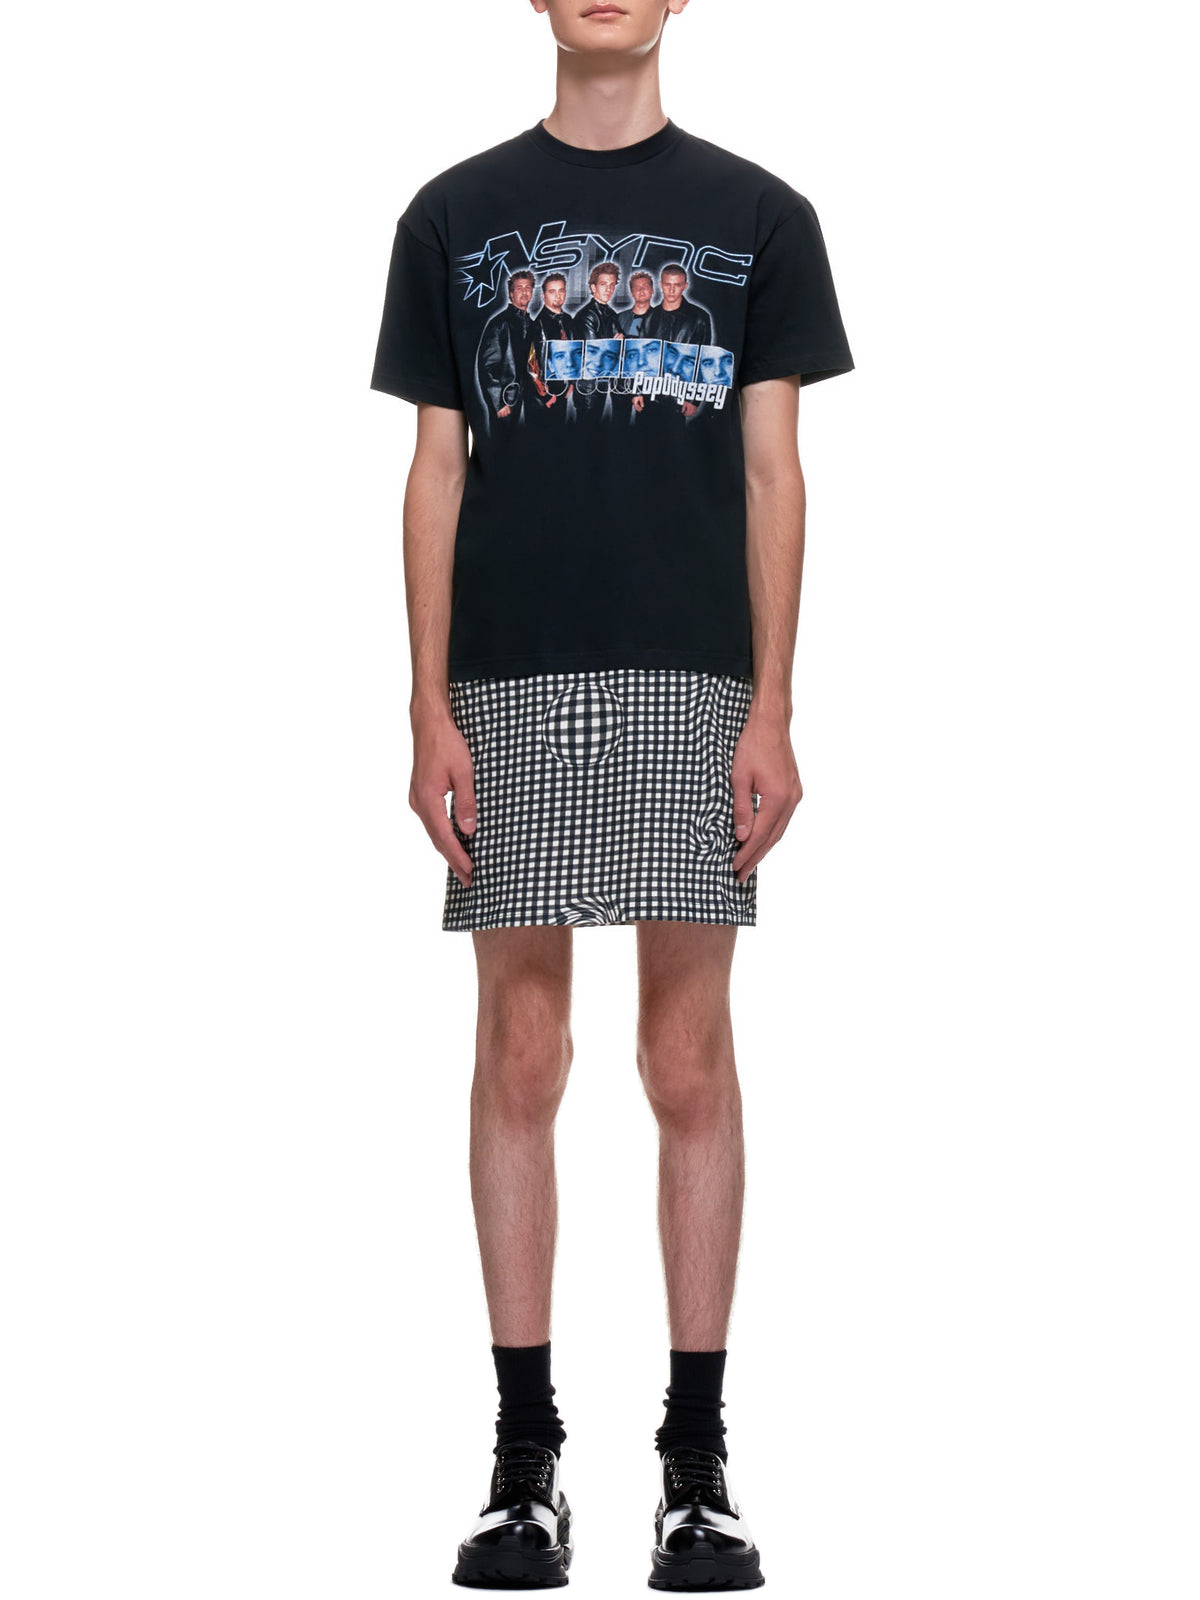 Distorted Gingham Vintage Boyband T-Shirt (EP2-NA-BLK-POP-ODYSSEY)